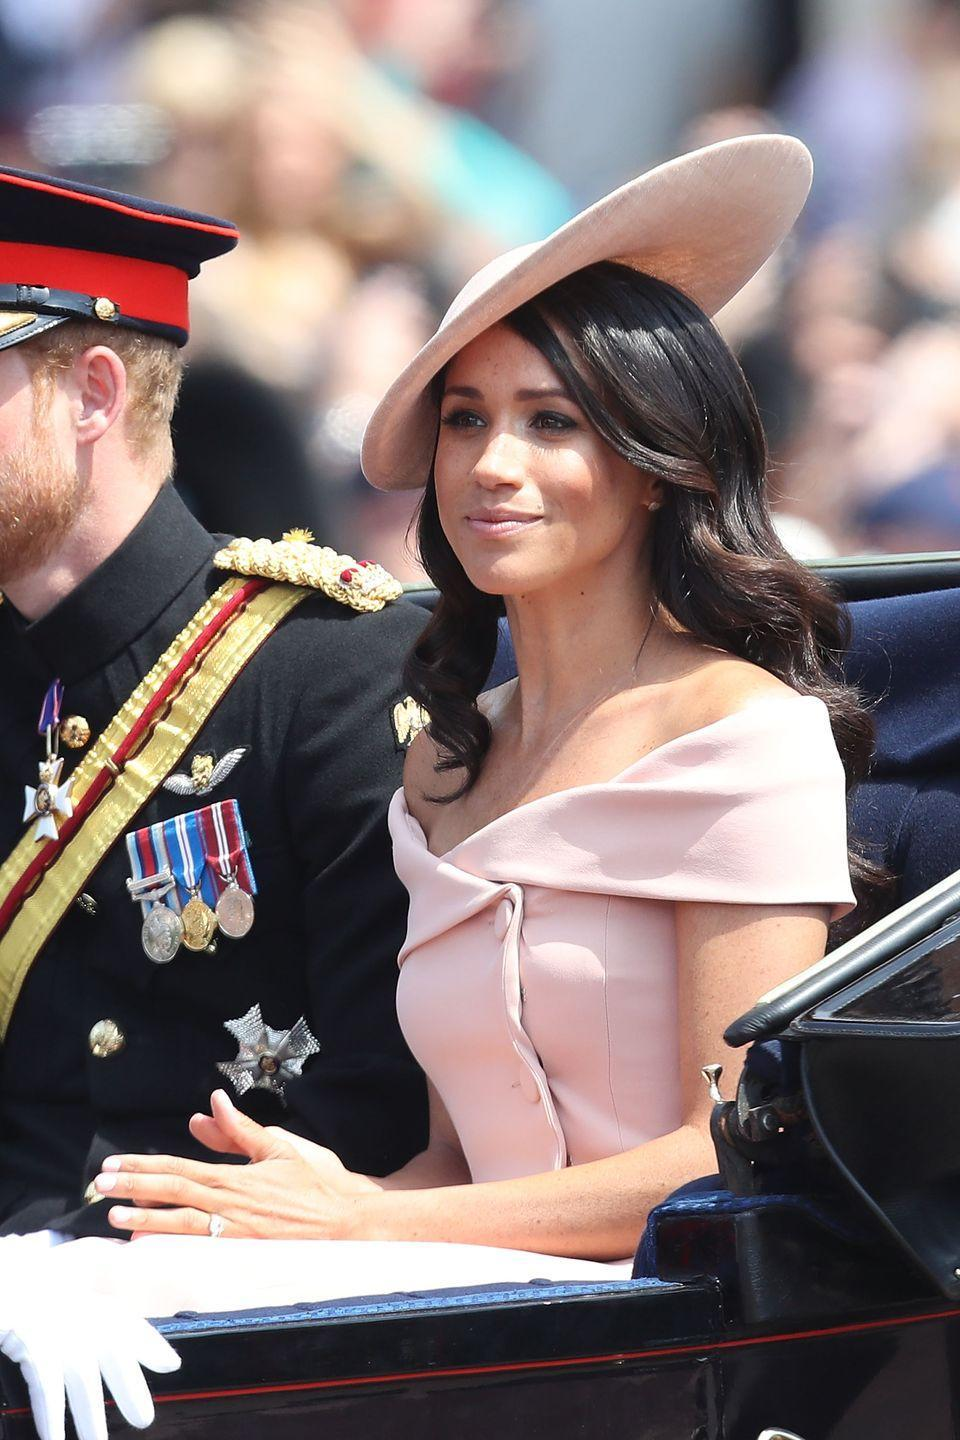 """<p>At Trooping the Colour in 2018, which was Meghan's second official appearance after her royal wedding, she opted for an off-the-shoulder Carolina Herrera dress. Stunning, no? Some thought it broke the """"rule"""" that royal women should dress modestly and not show too much skin—especially considering it was a daytime event. Don't tell the Queen, but this dress seems pretty modest to me...</p>"""